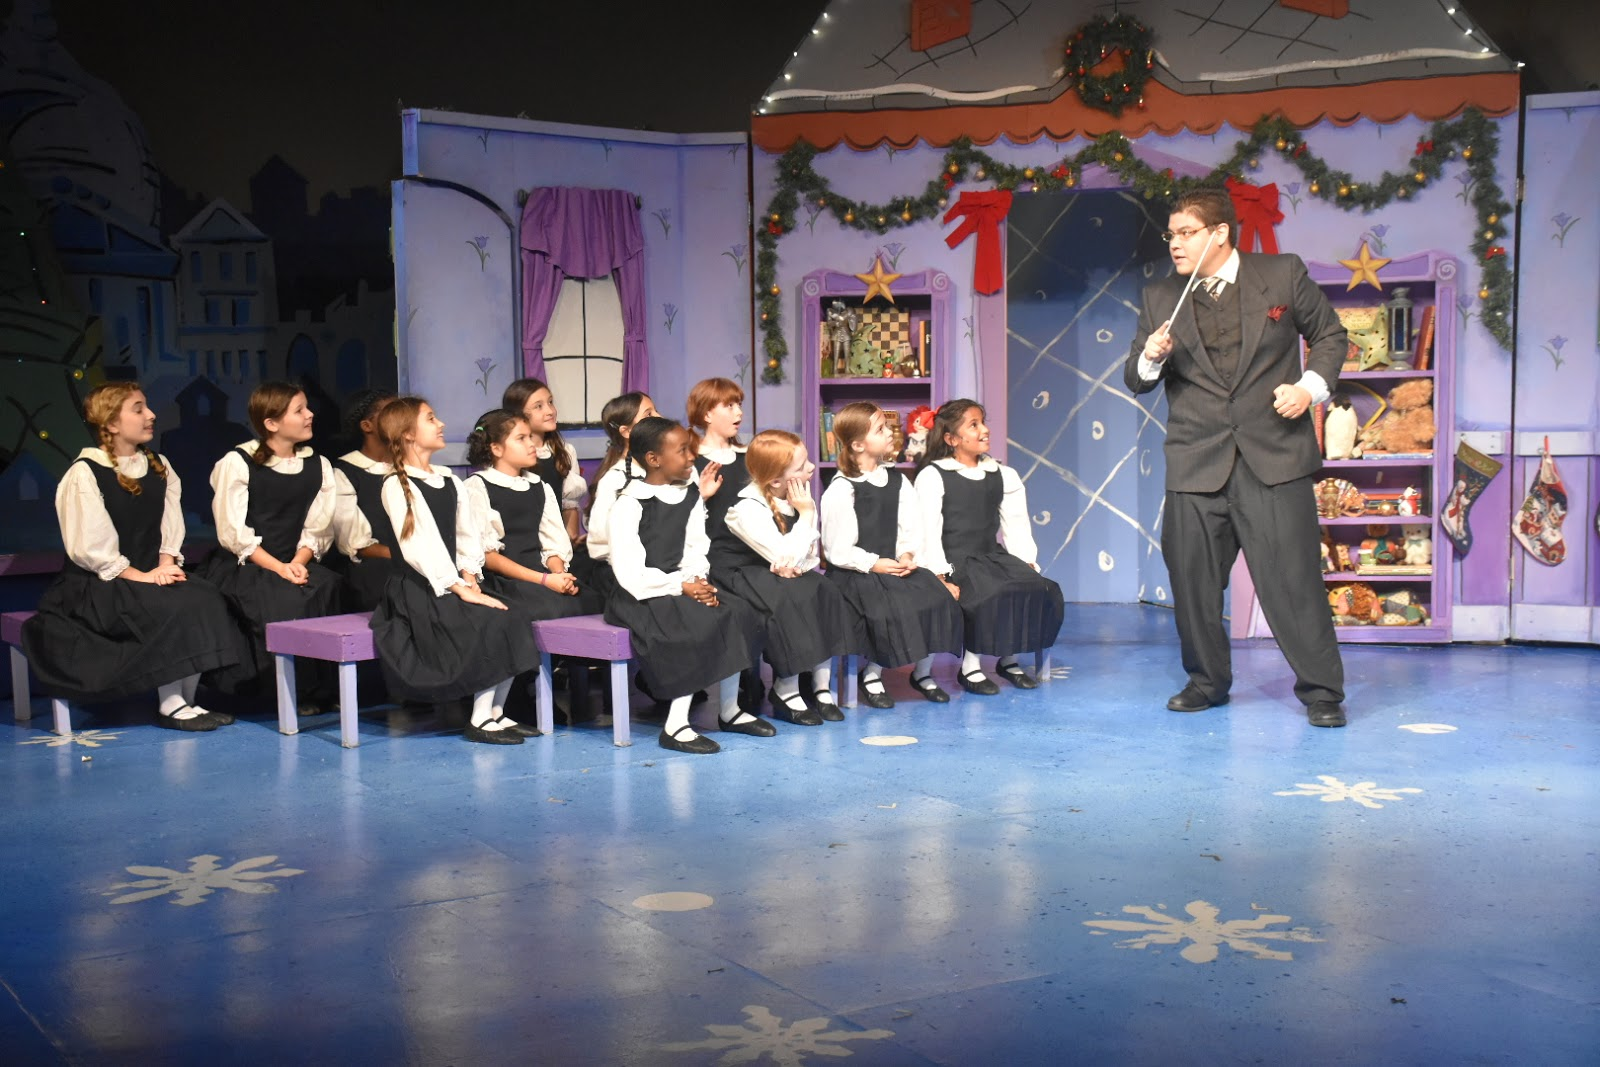 Madeline's Christmas Celebrates 10th Anniversary at Horizon Theatre, December 2-31  via www.productreviewmom.com